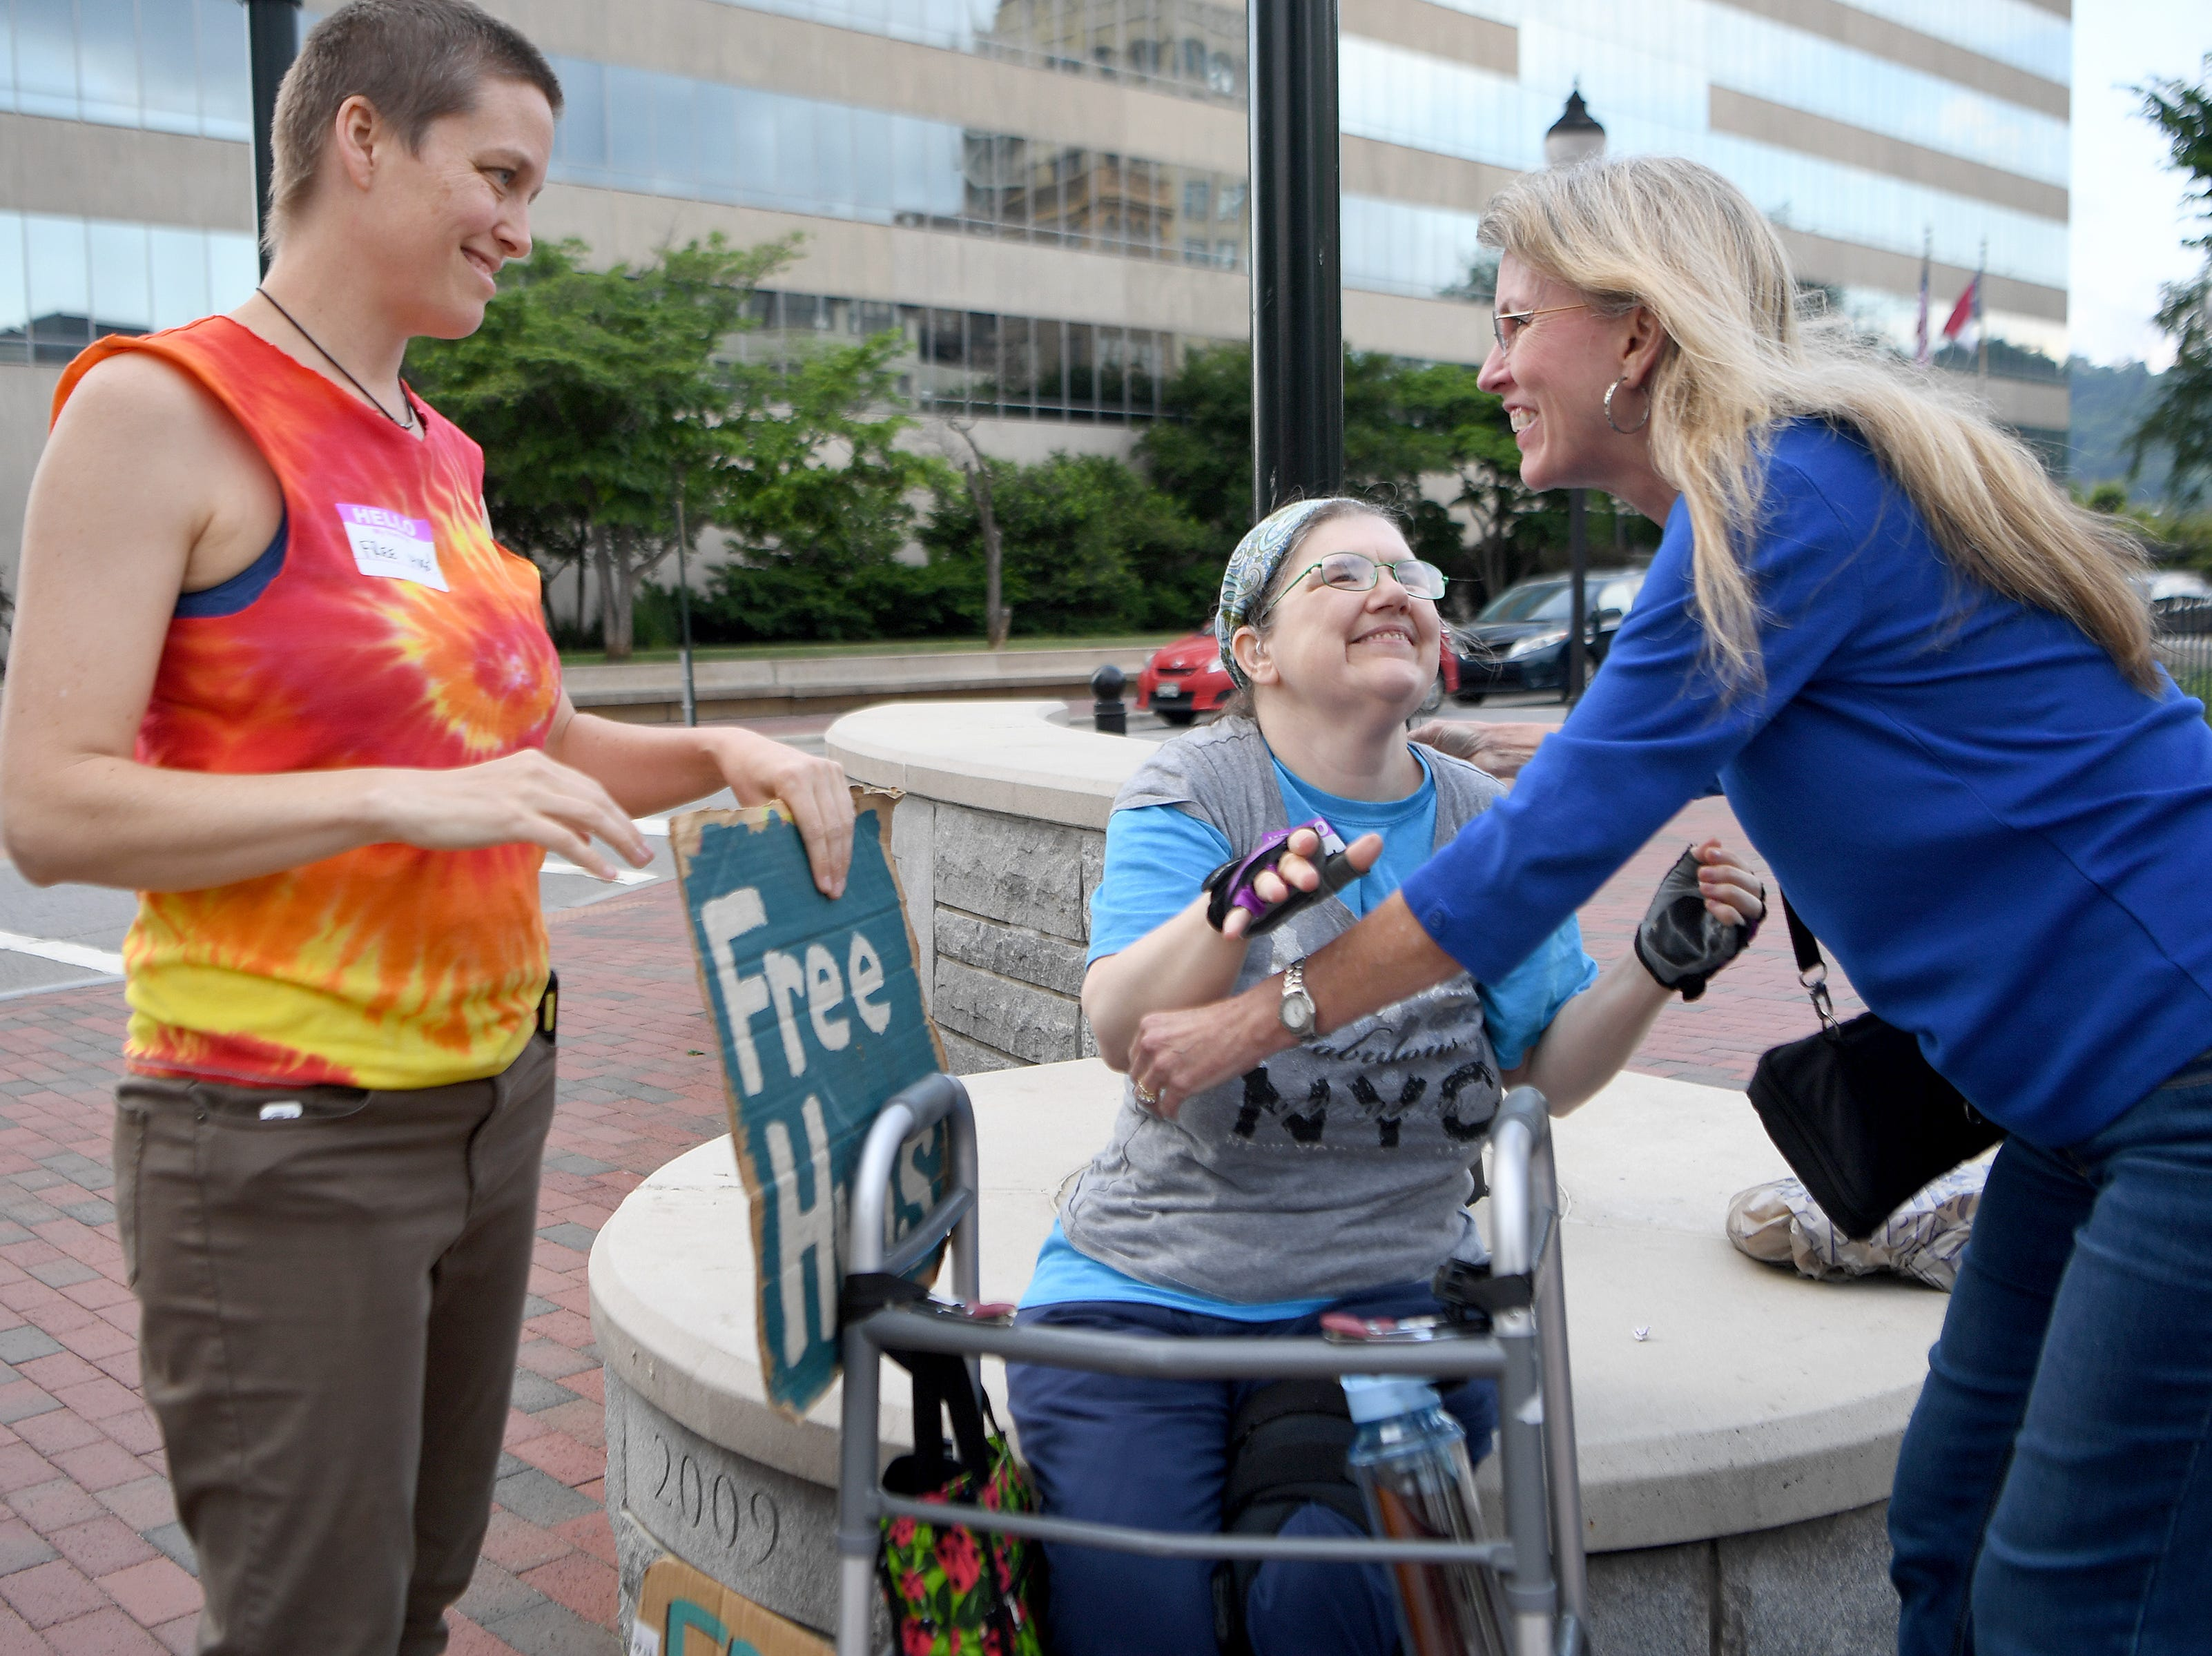 As Lena Lane looks on, Christine DeWalt gets a hug from Millie Whitney, of Augusta, during a Free Hug Flash Mob downtown on Thursday, May 24, 2018.